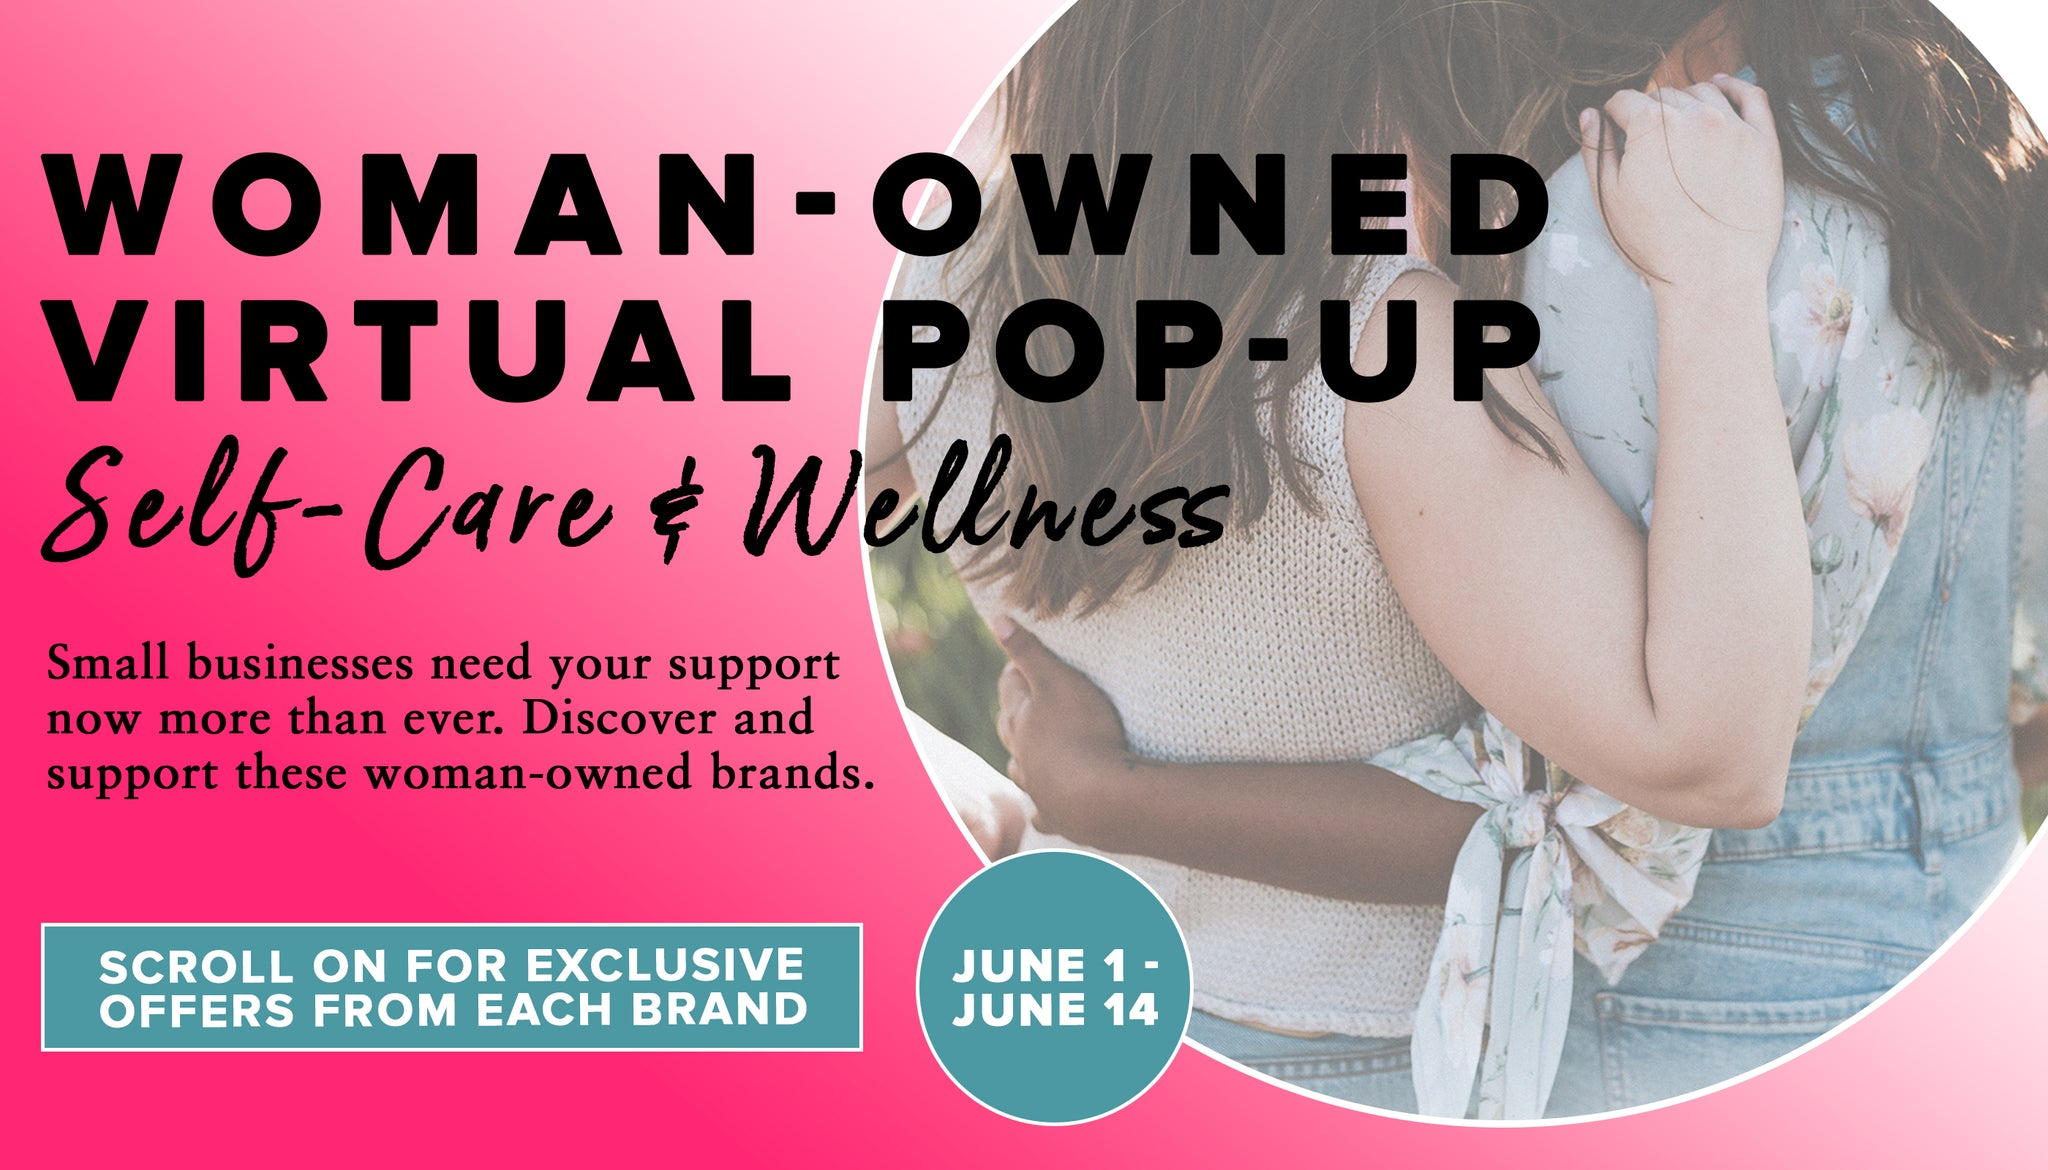 woman owned virtual pop-up Self care & wellness